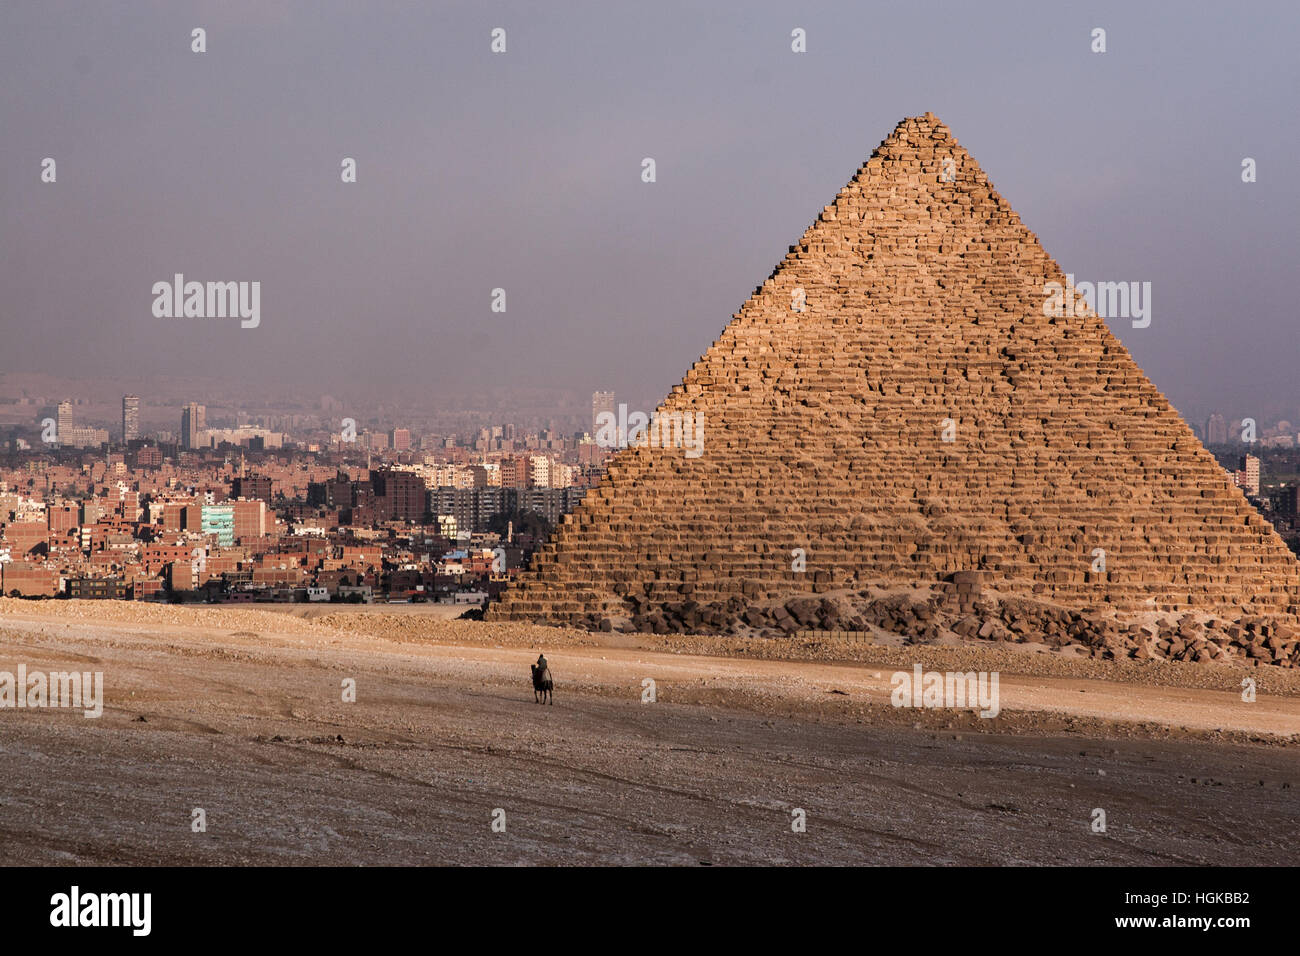 Lone rider on a camel near the base of one of the pyramids of Giza with the city of Cairo in the background. - Stock Image